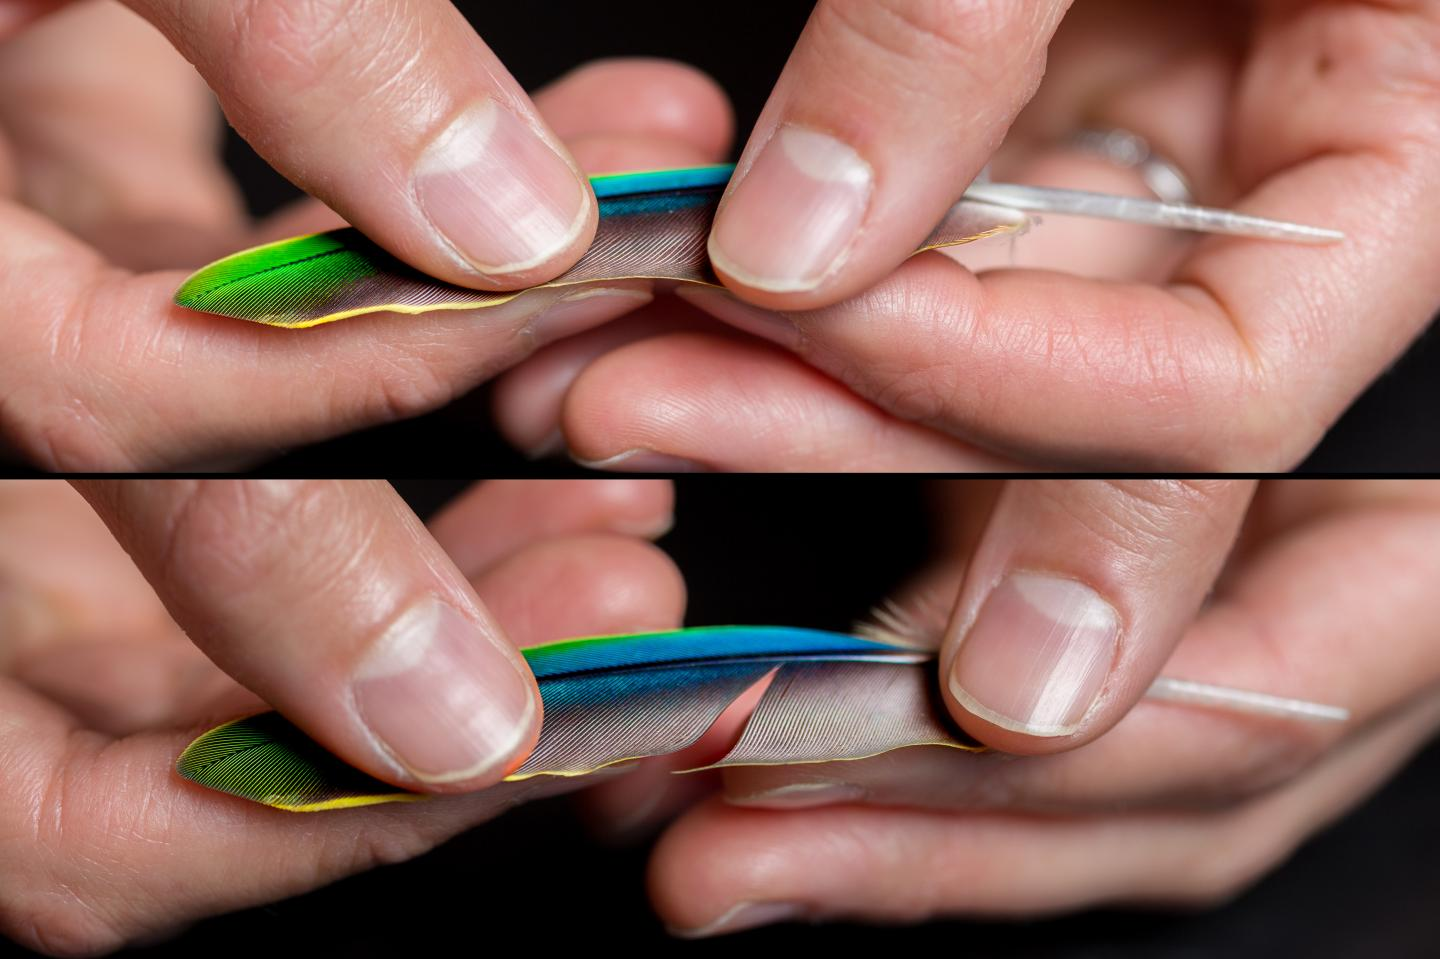 Feather Zipping and Unzipping